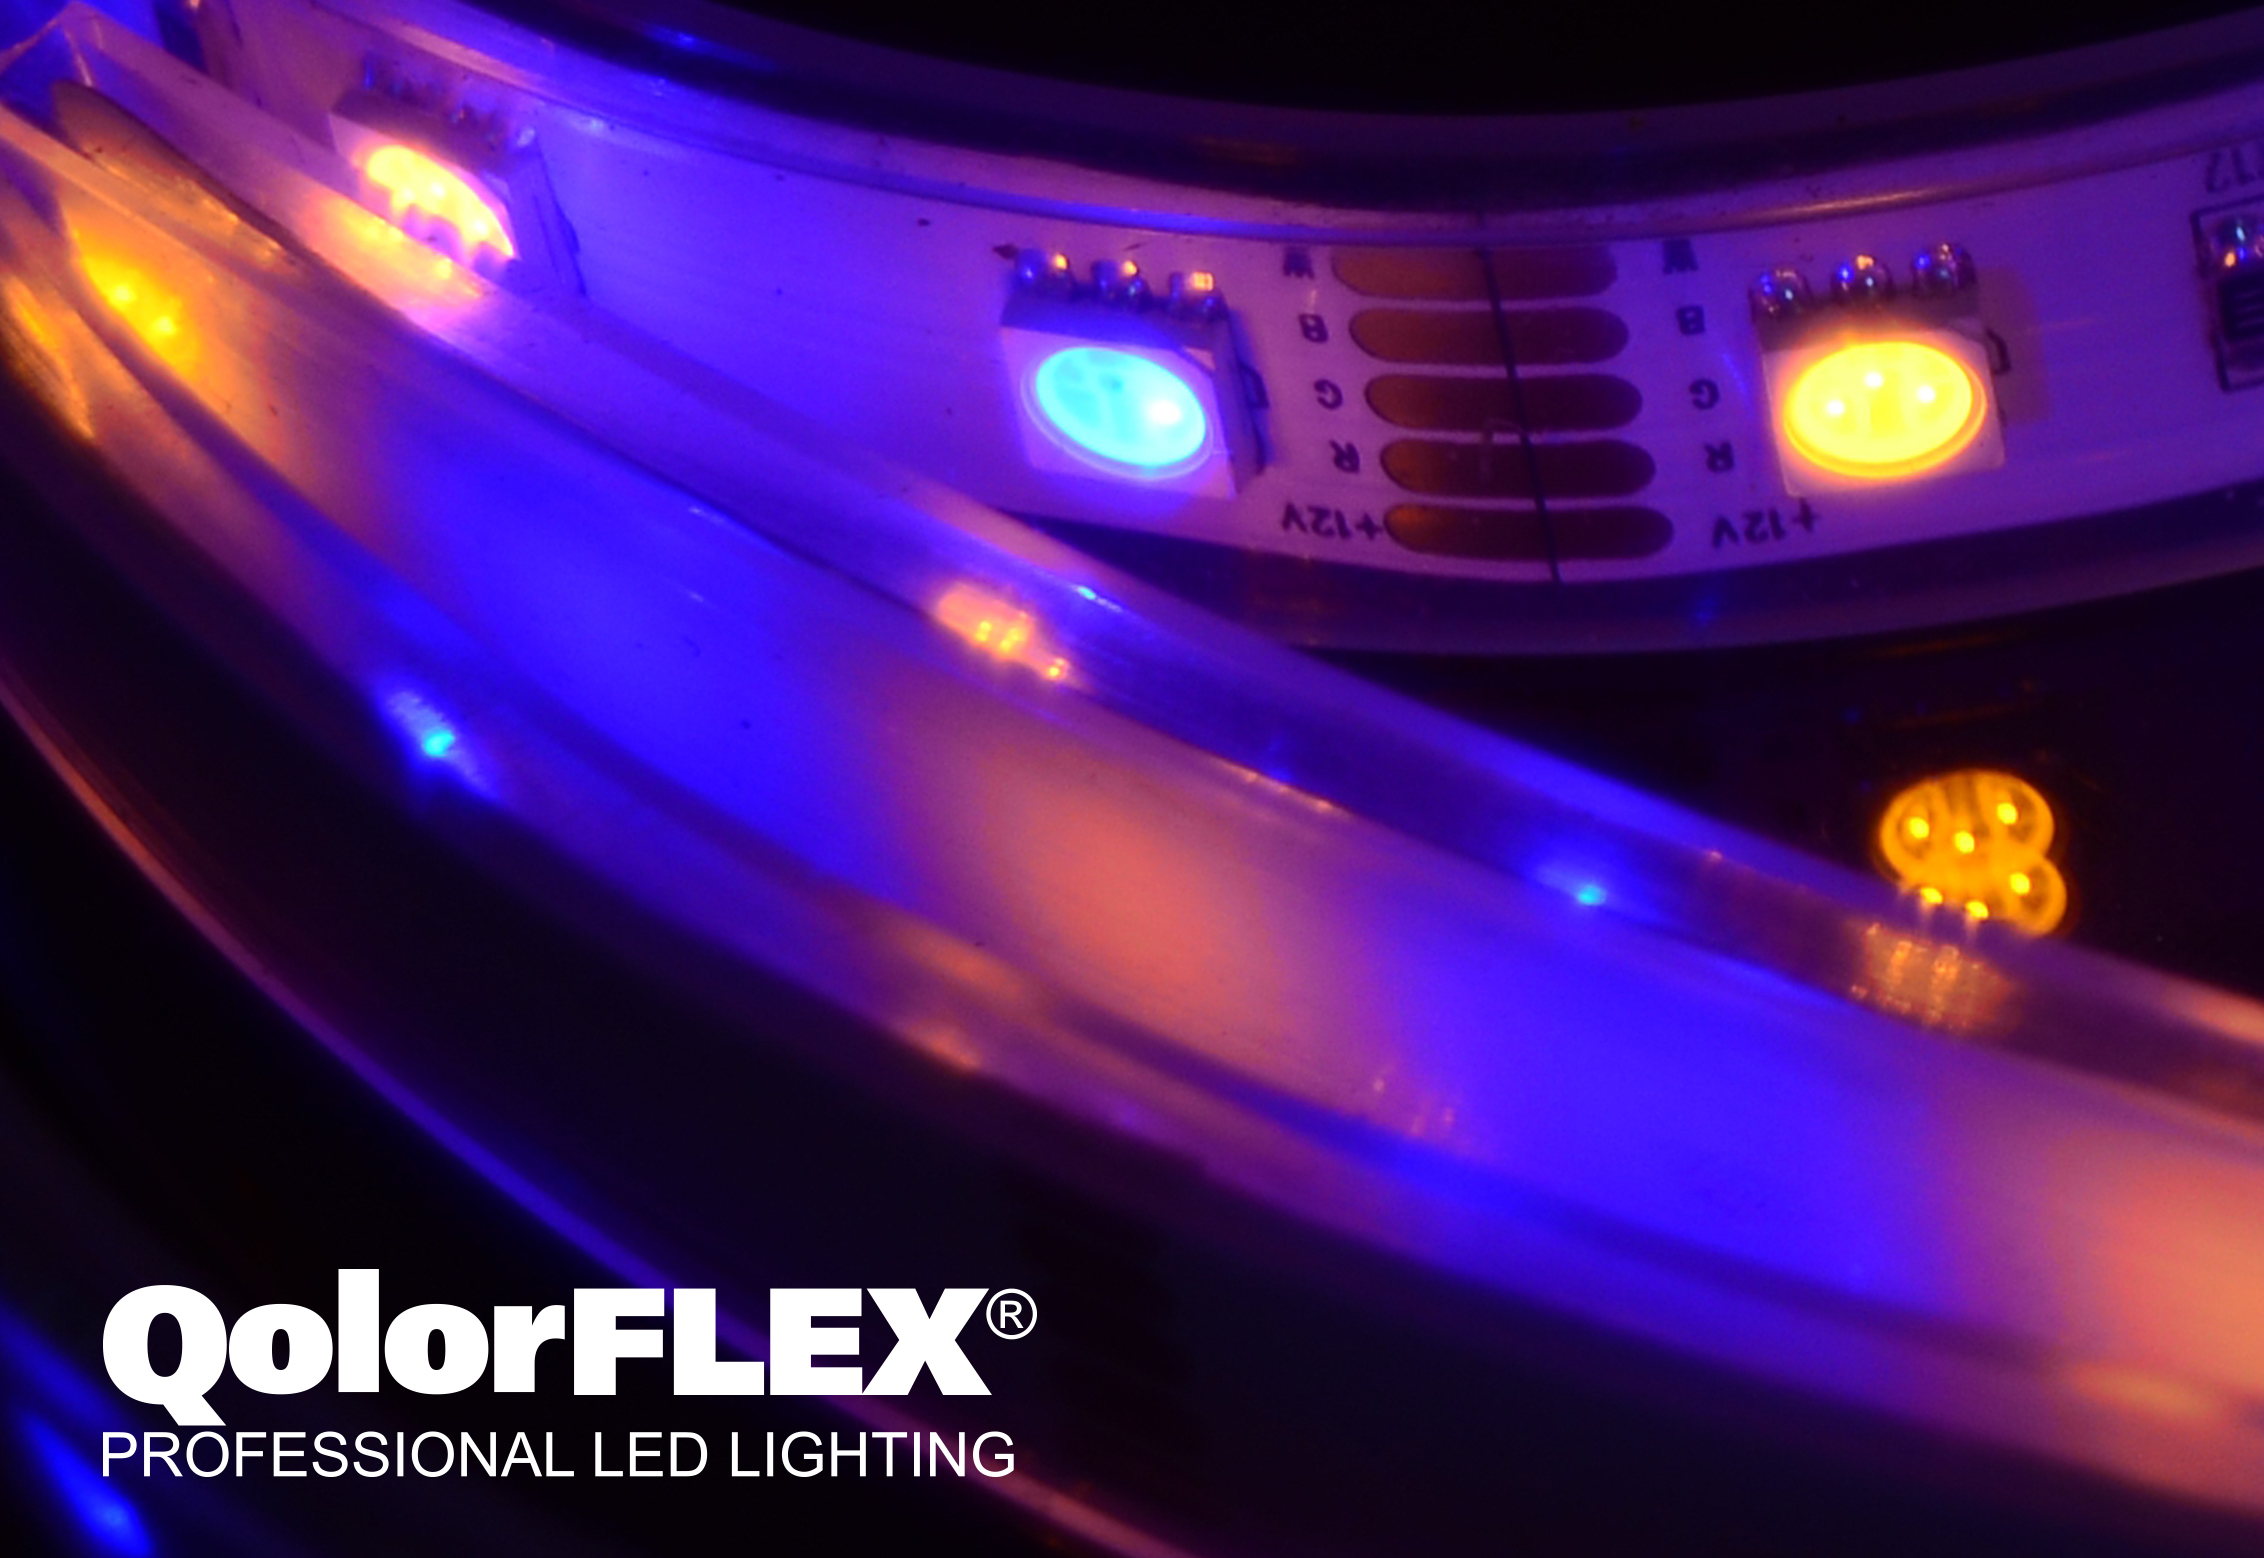 QolorFLEX LED Tape close up - purple hue